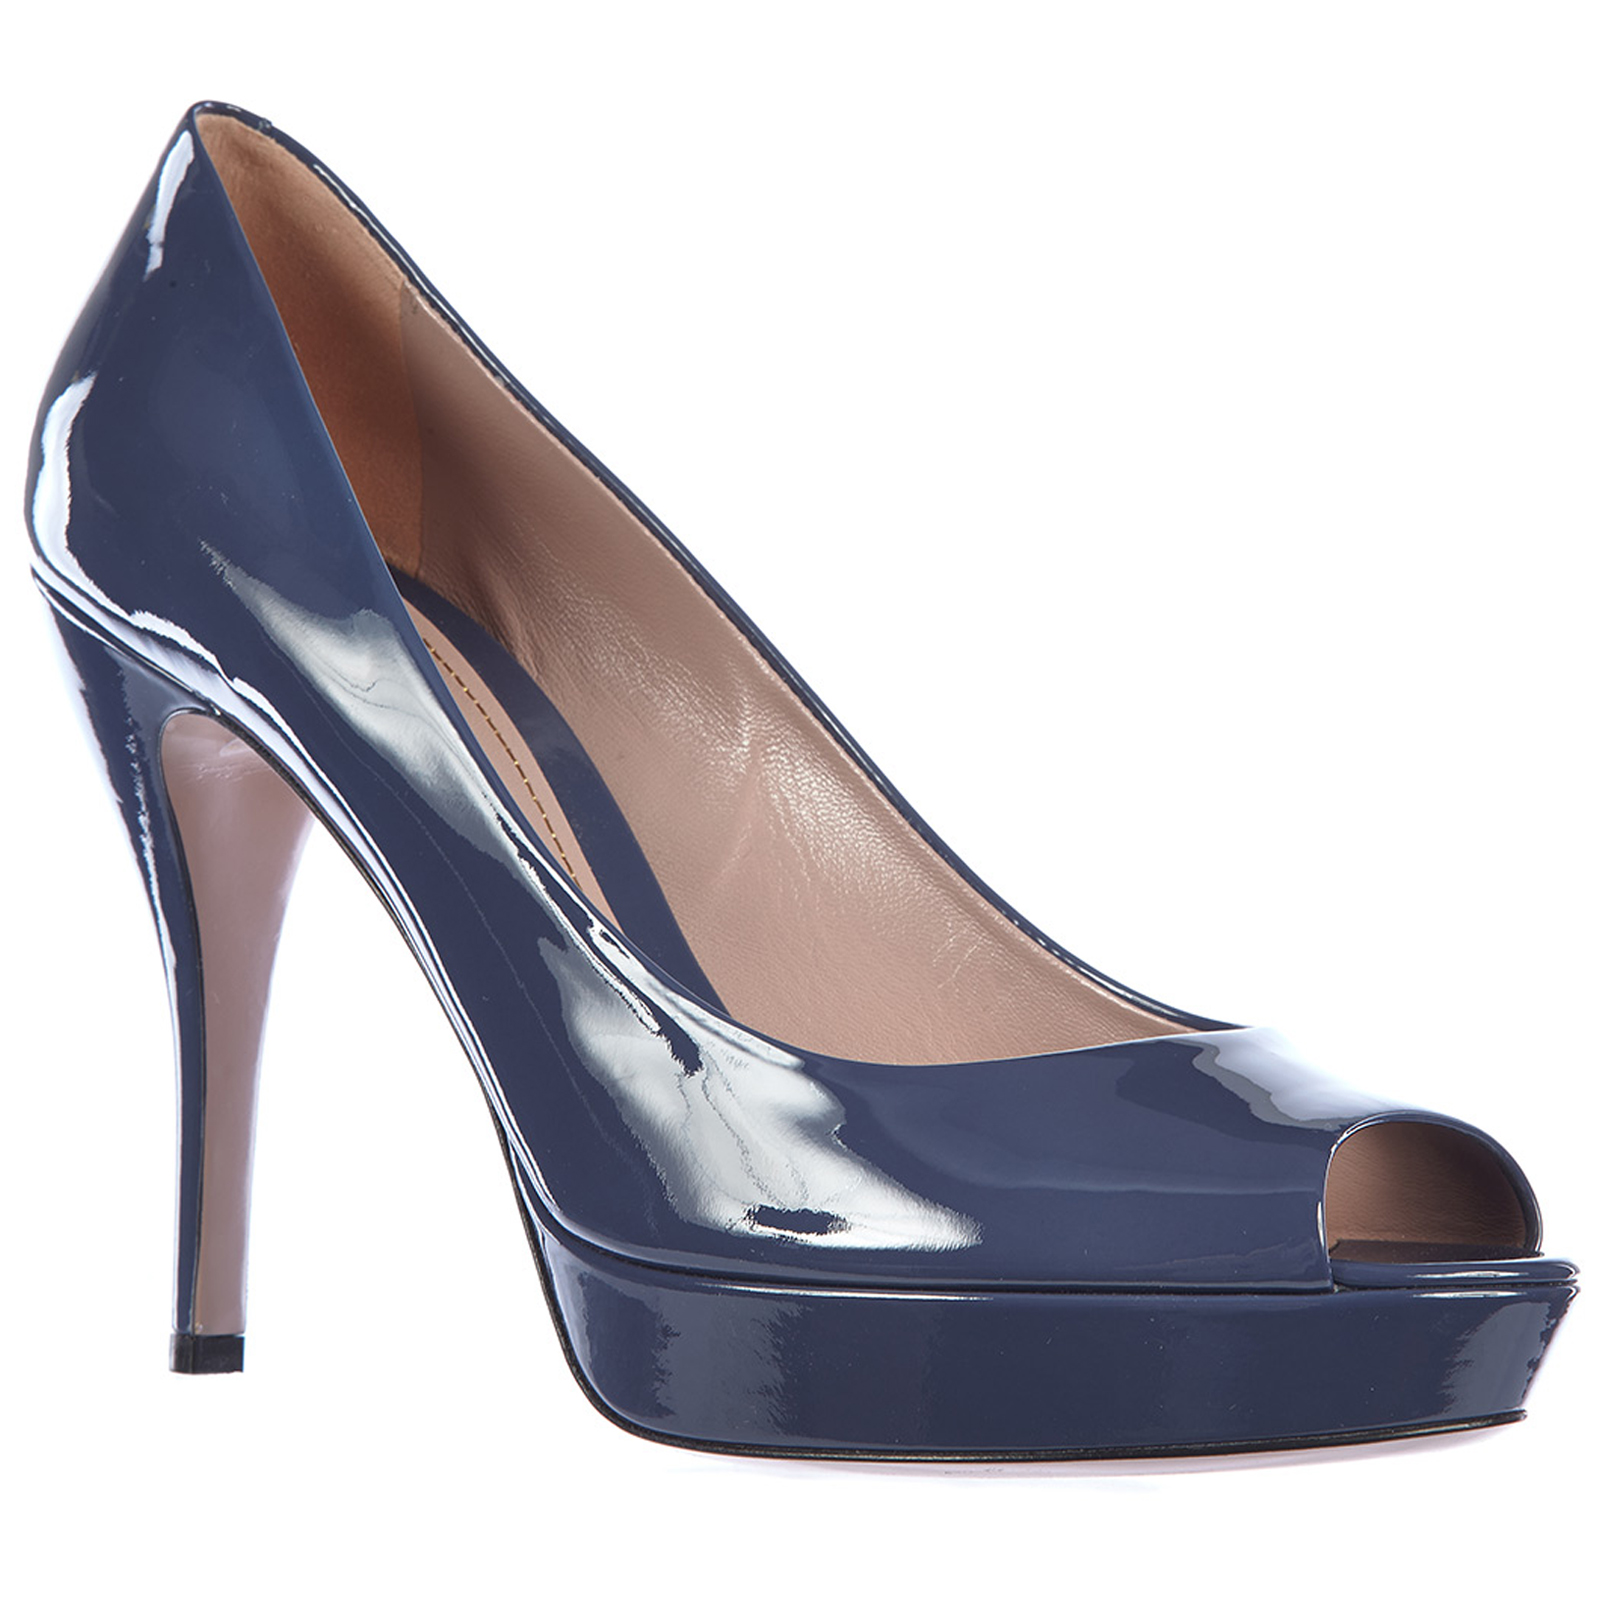 986dc75d567 ... Women s leather pumps court shoes high heel crystall ...